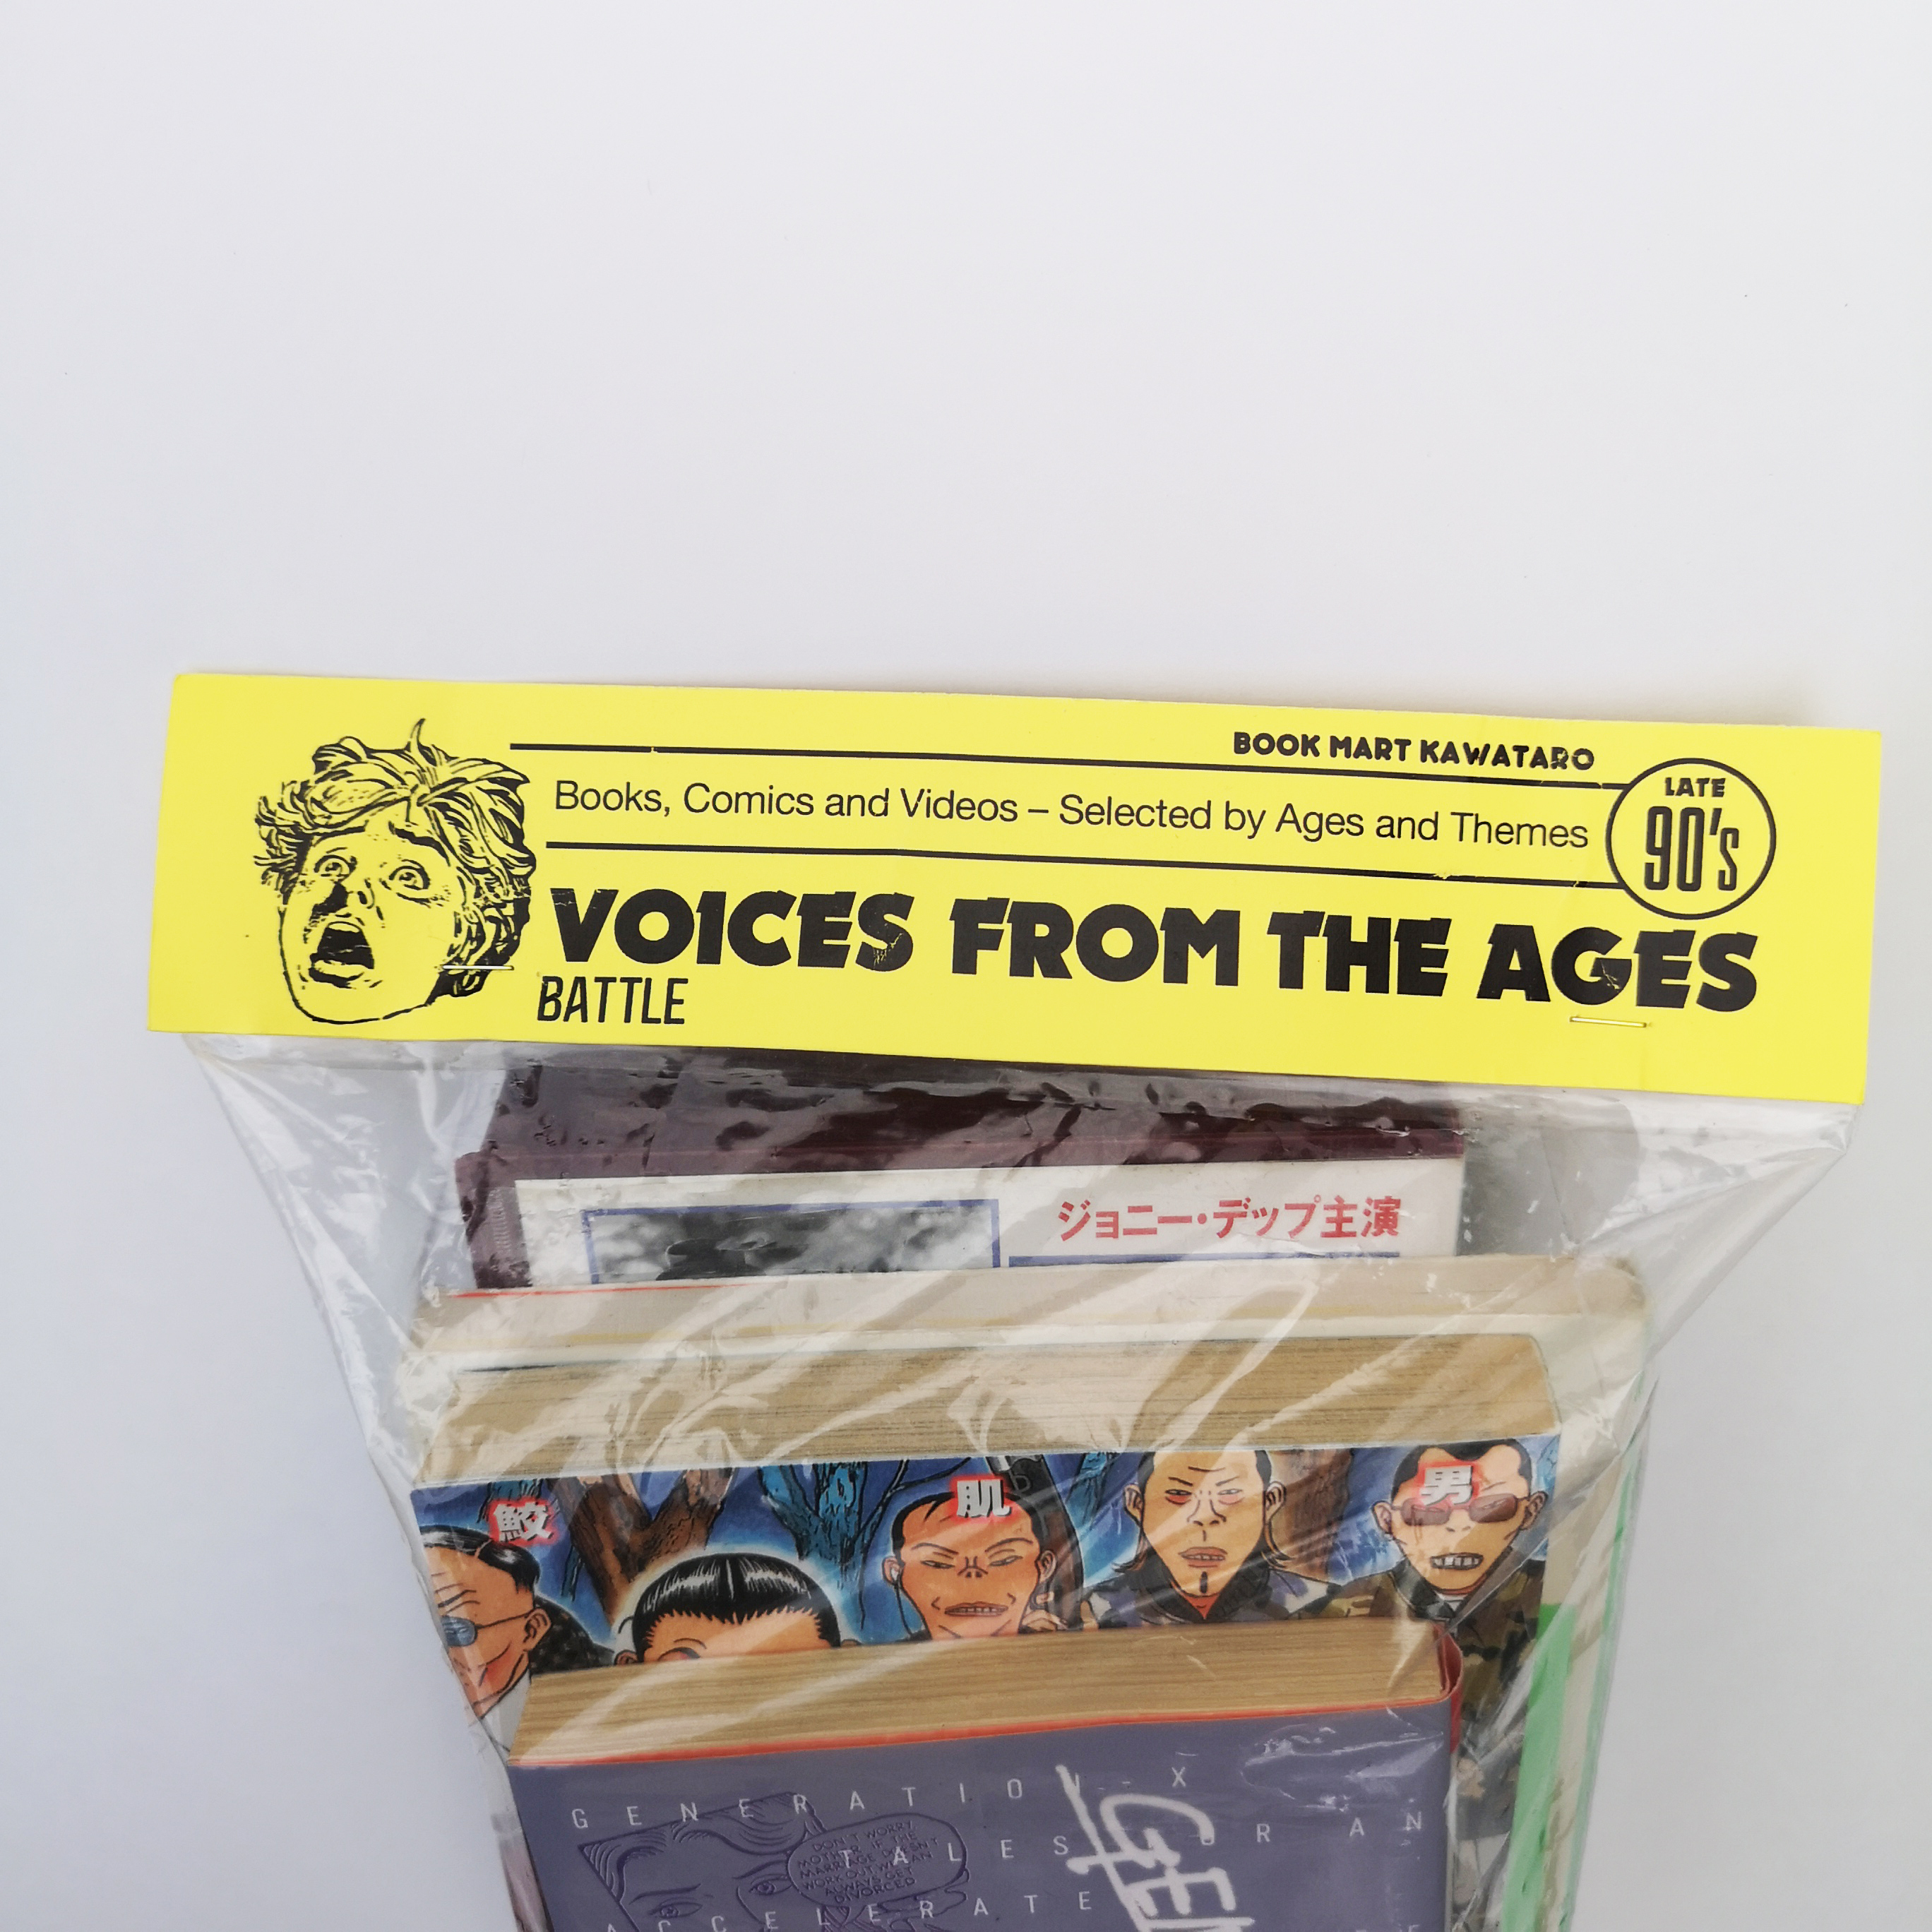 """VOICES FROM THE AGES - LATE 90's """"BATTLE"""""""